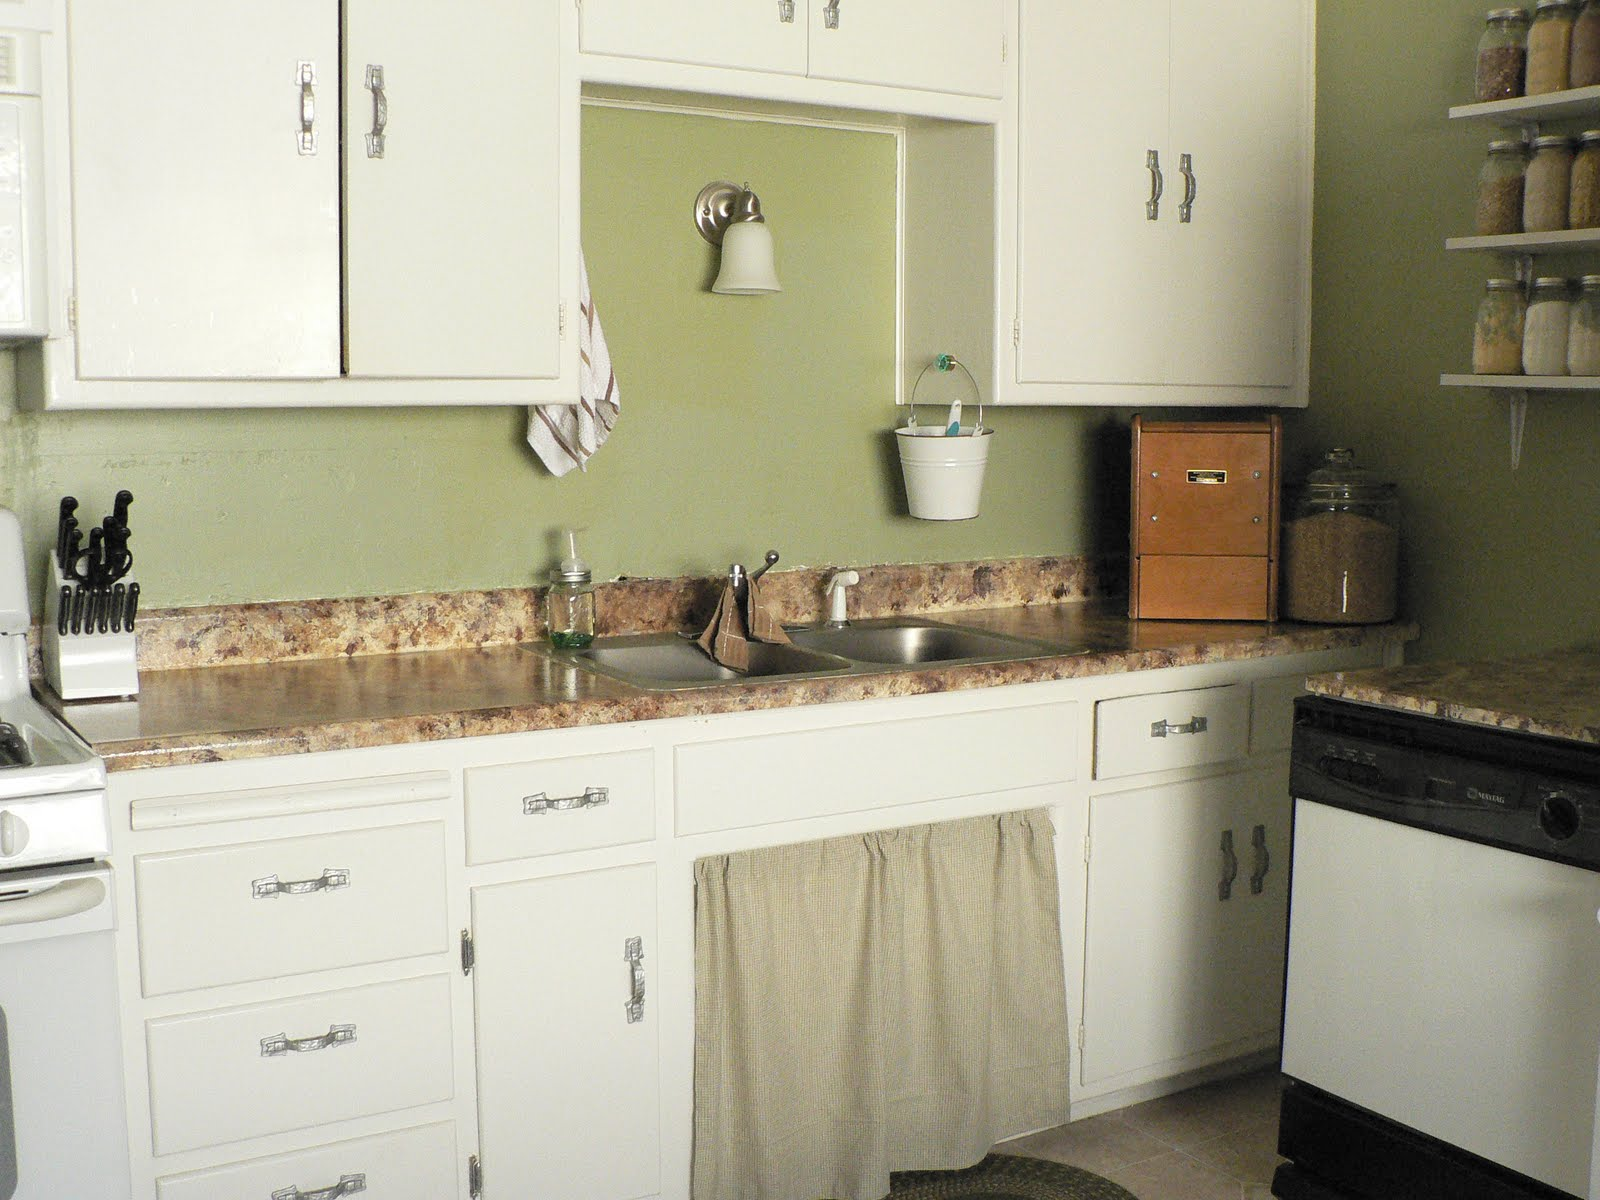 Kitchen Countertops Laminate : Cleaning And Professional Organization Painting Laminate Countertops